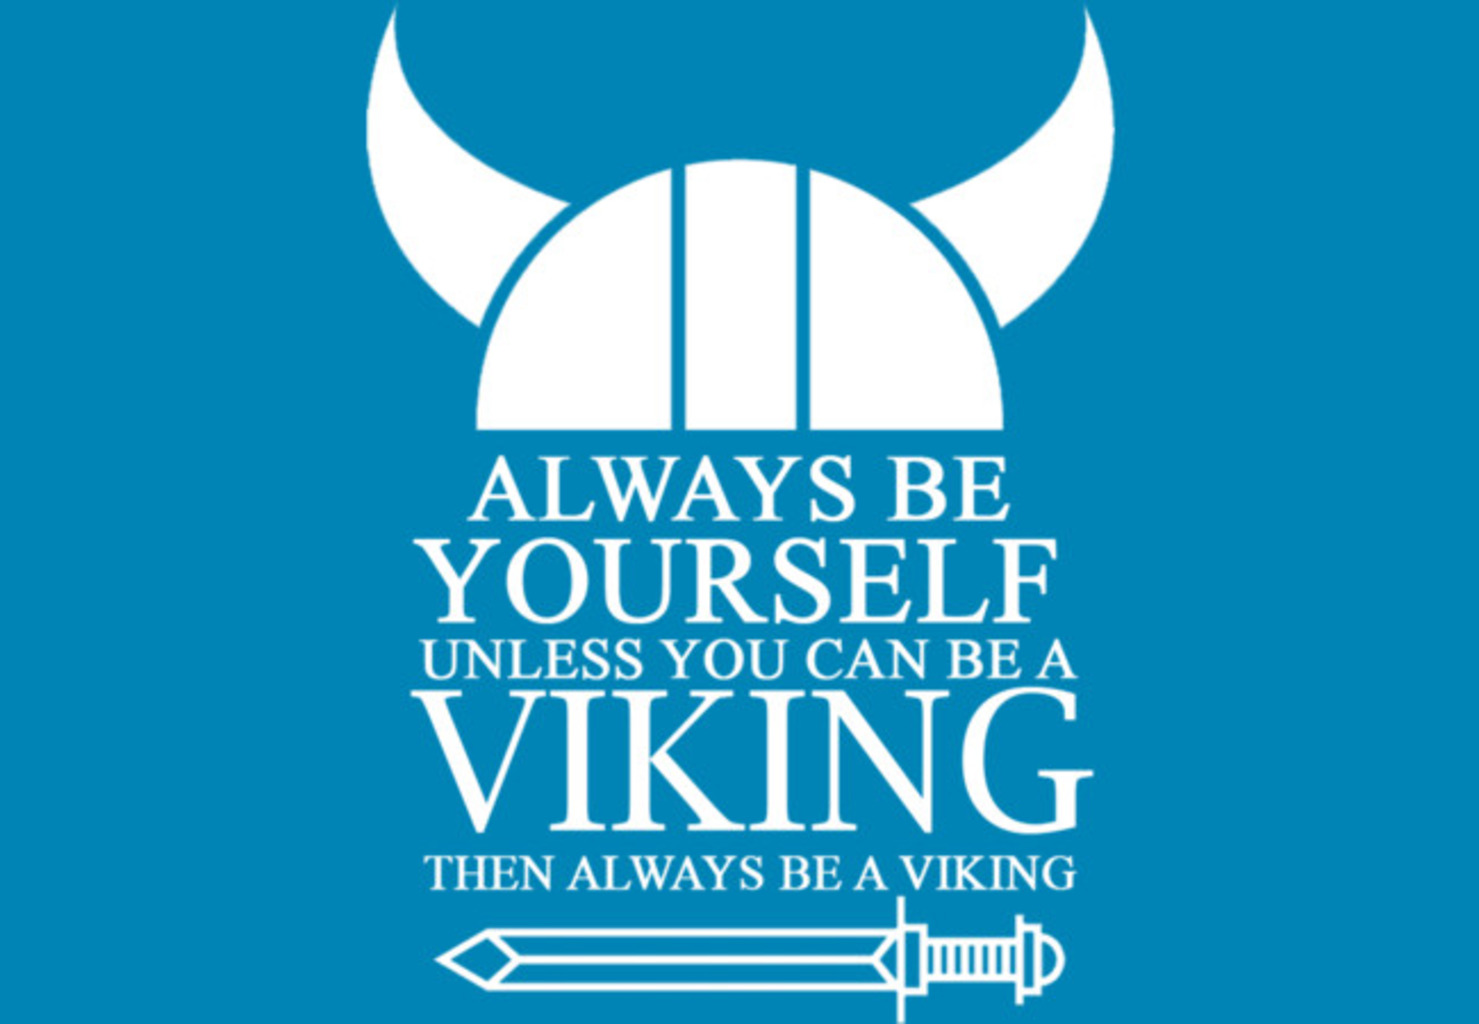 Design by Humans: ALWAYS BE YOURSELF UNLESS YOU CAN BE A VIKING THEN ALWAYS BE A V